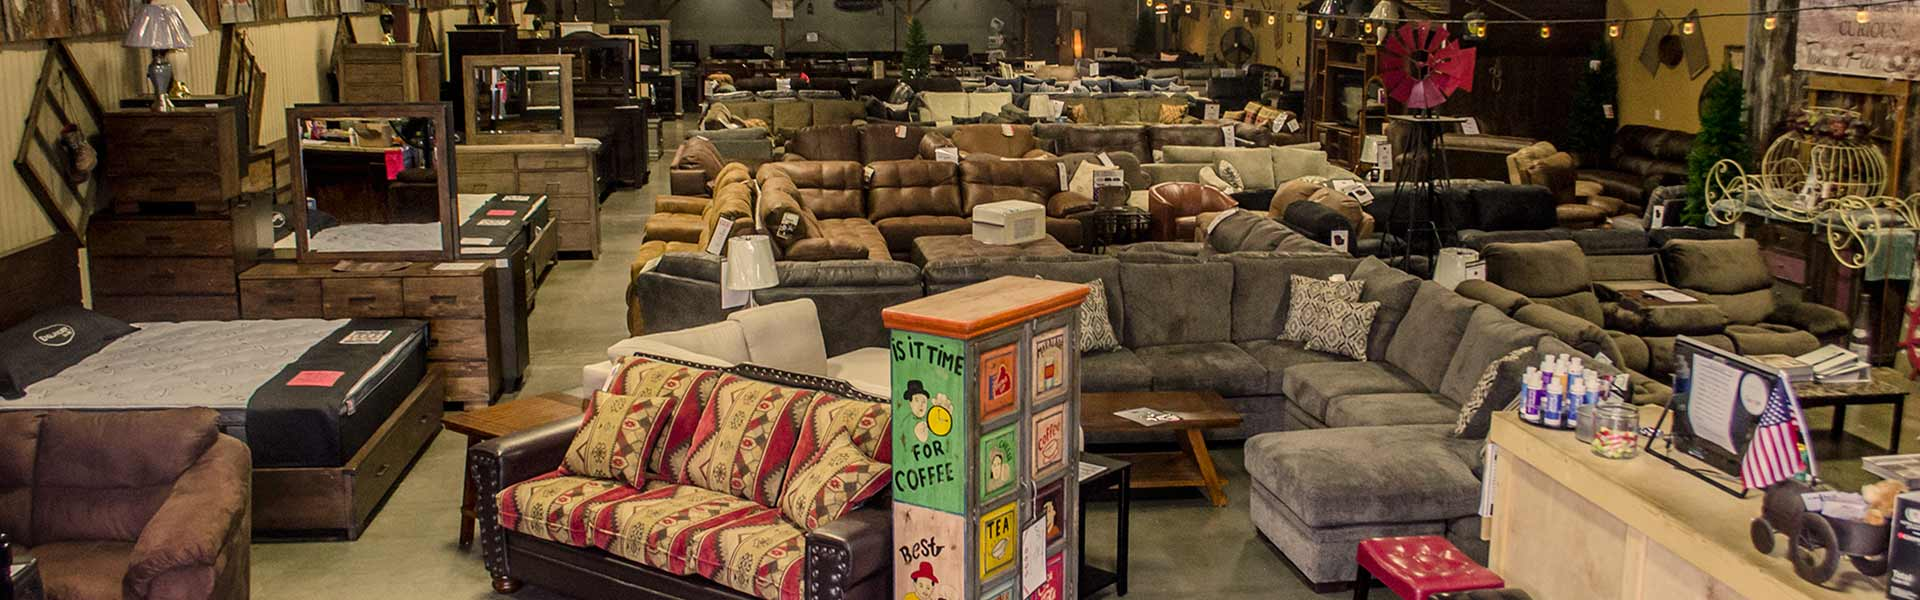 Services The Furniture Shack Discount Furniture Portland Or